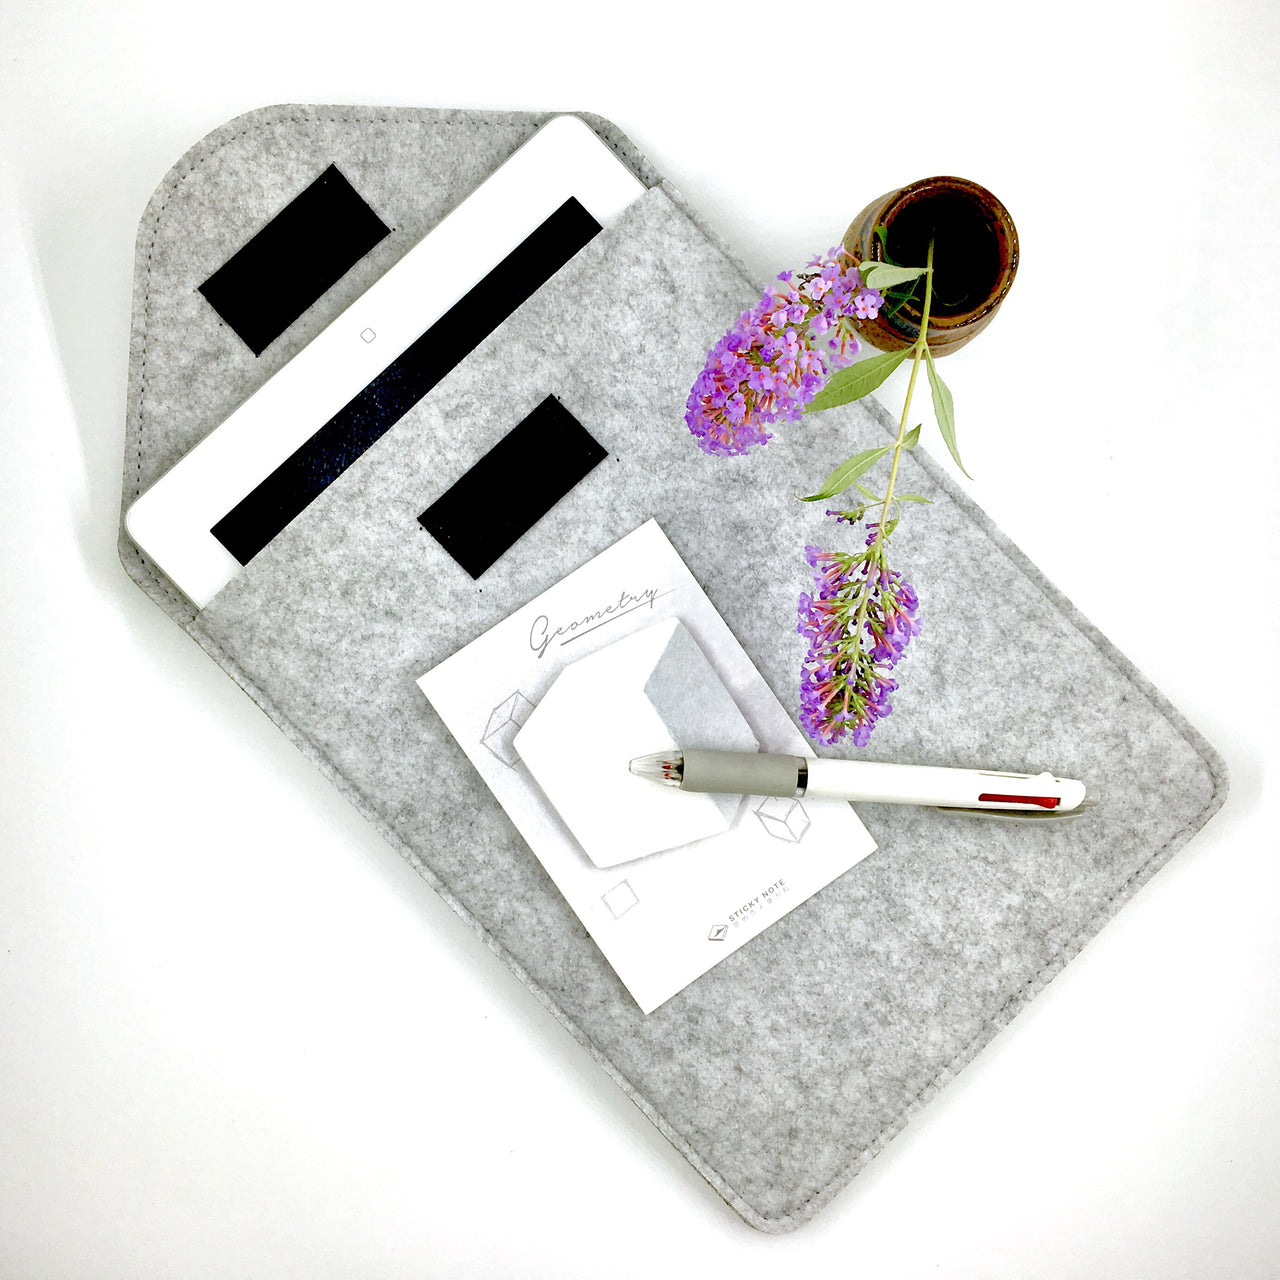 Felted Tablet Sleeve shown with IPad